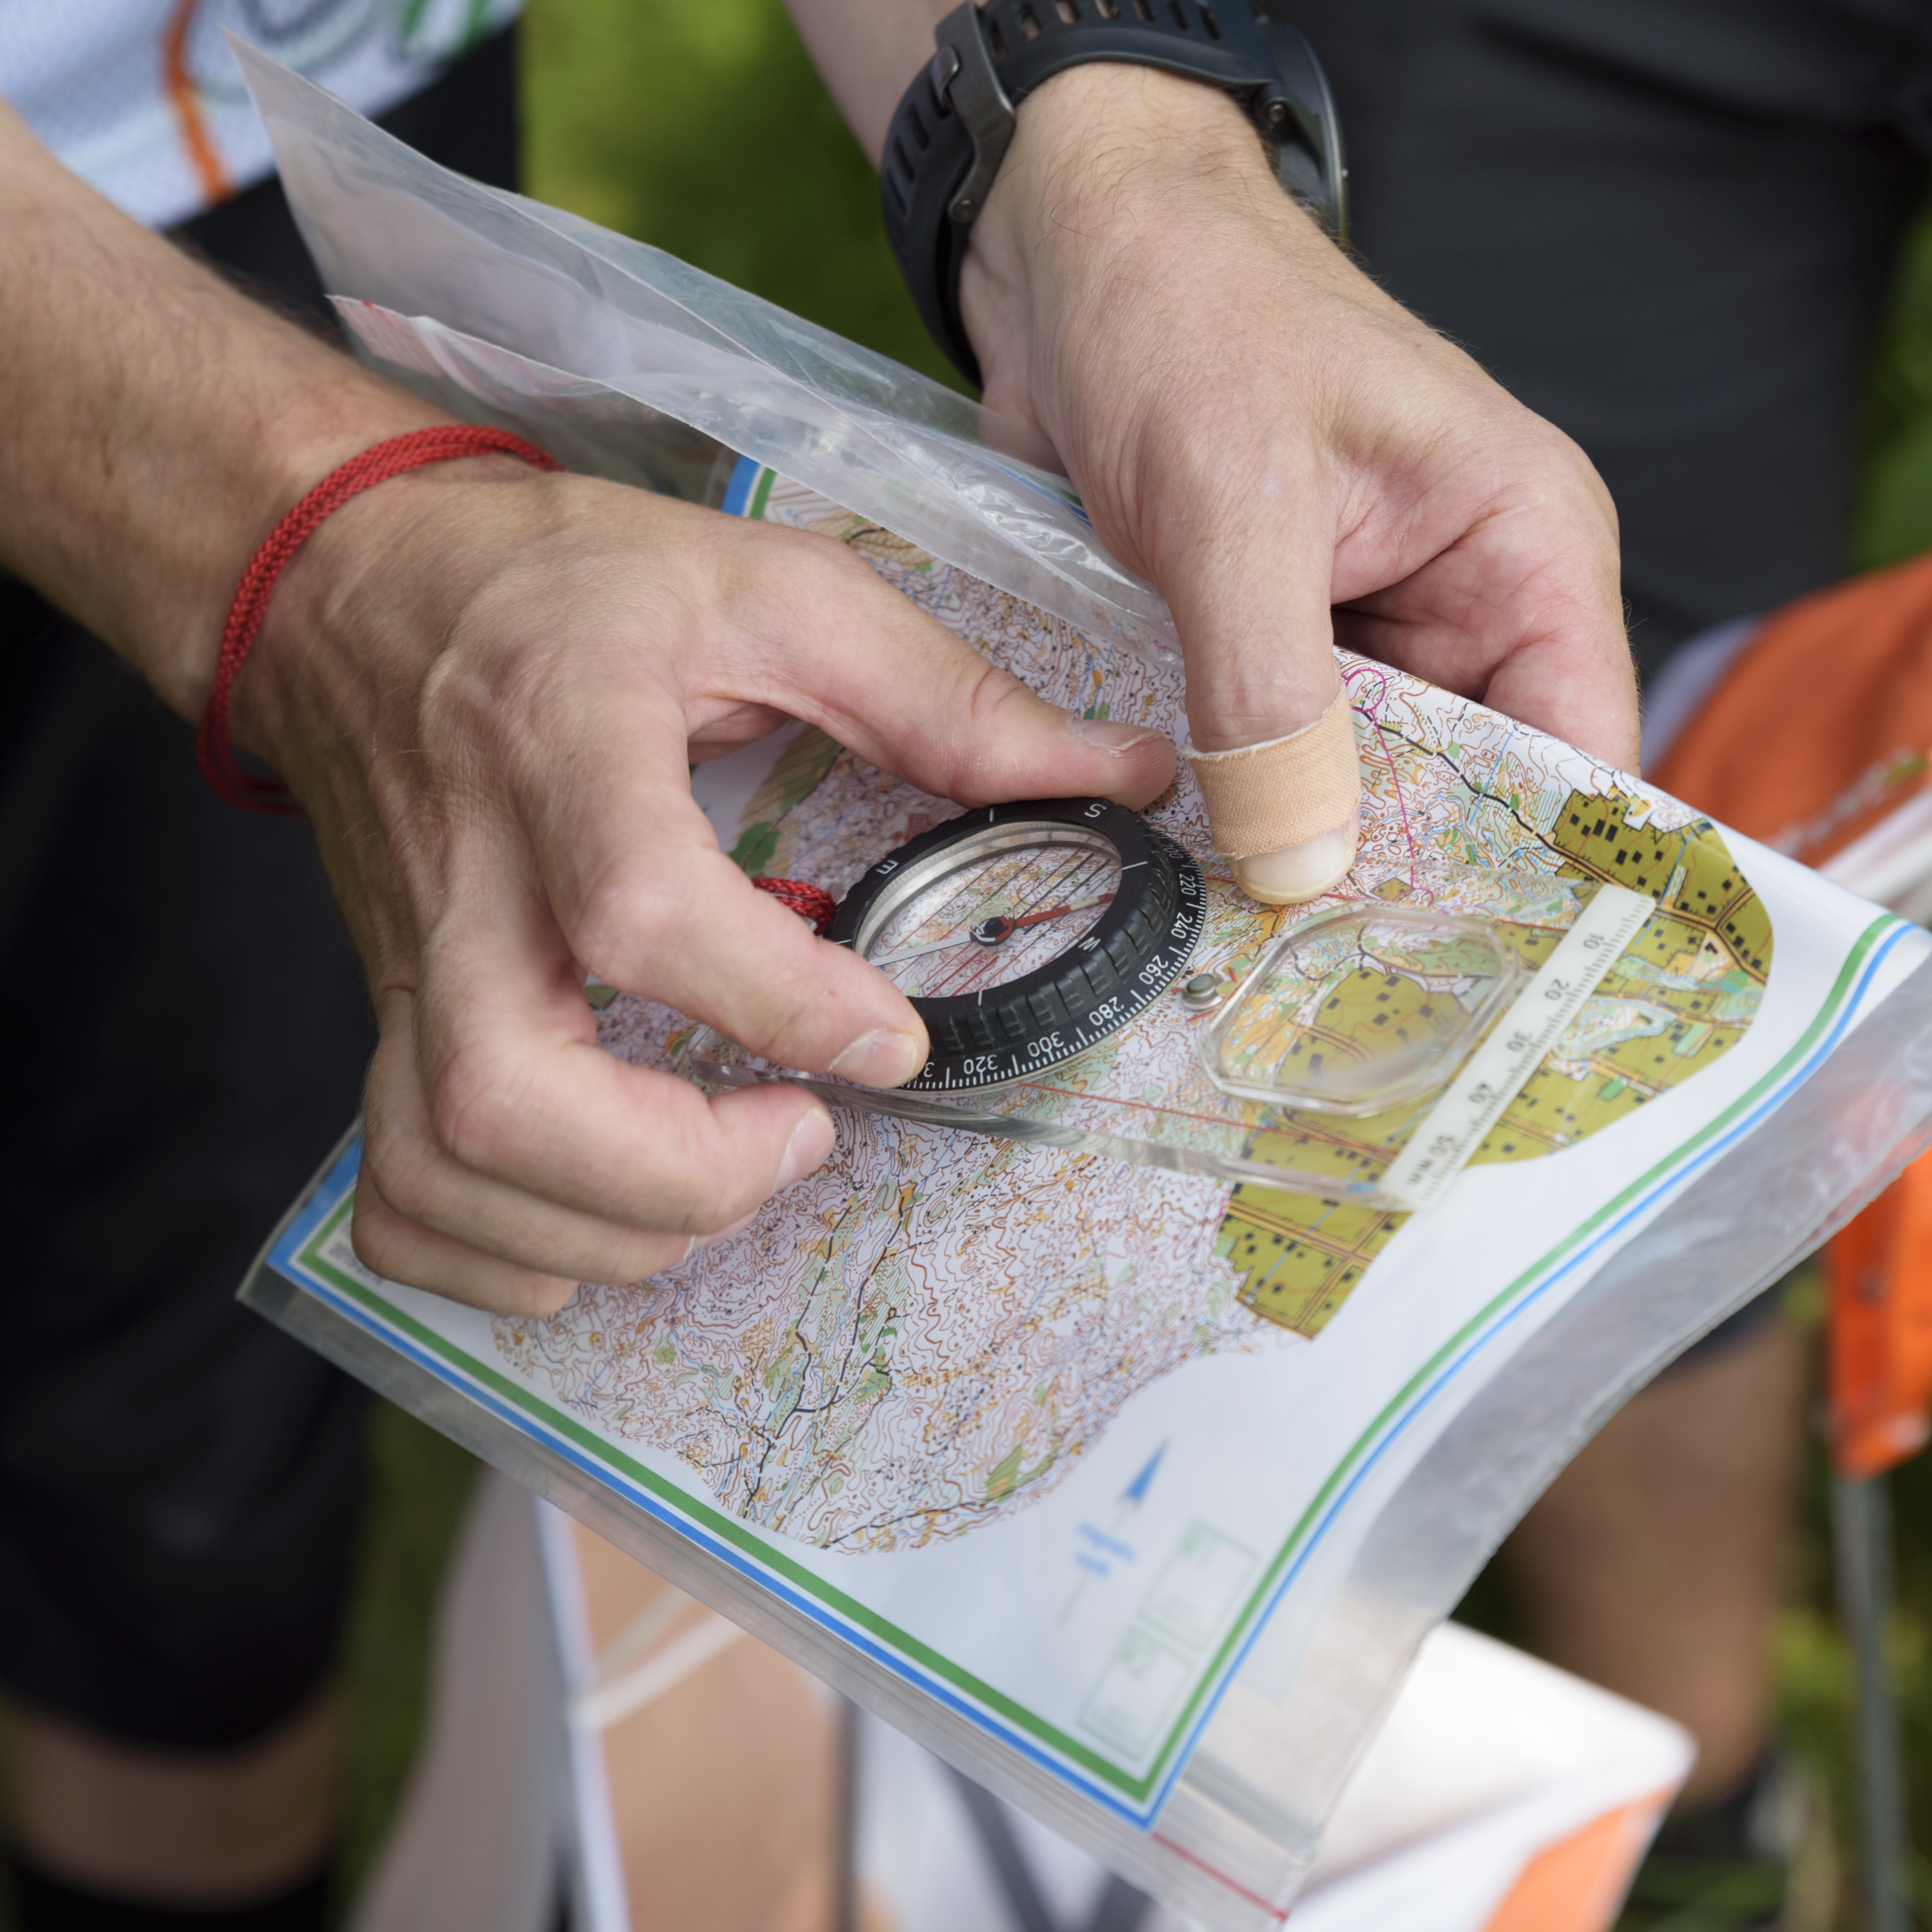 hand holds a compass over a map